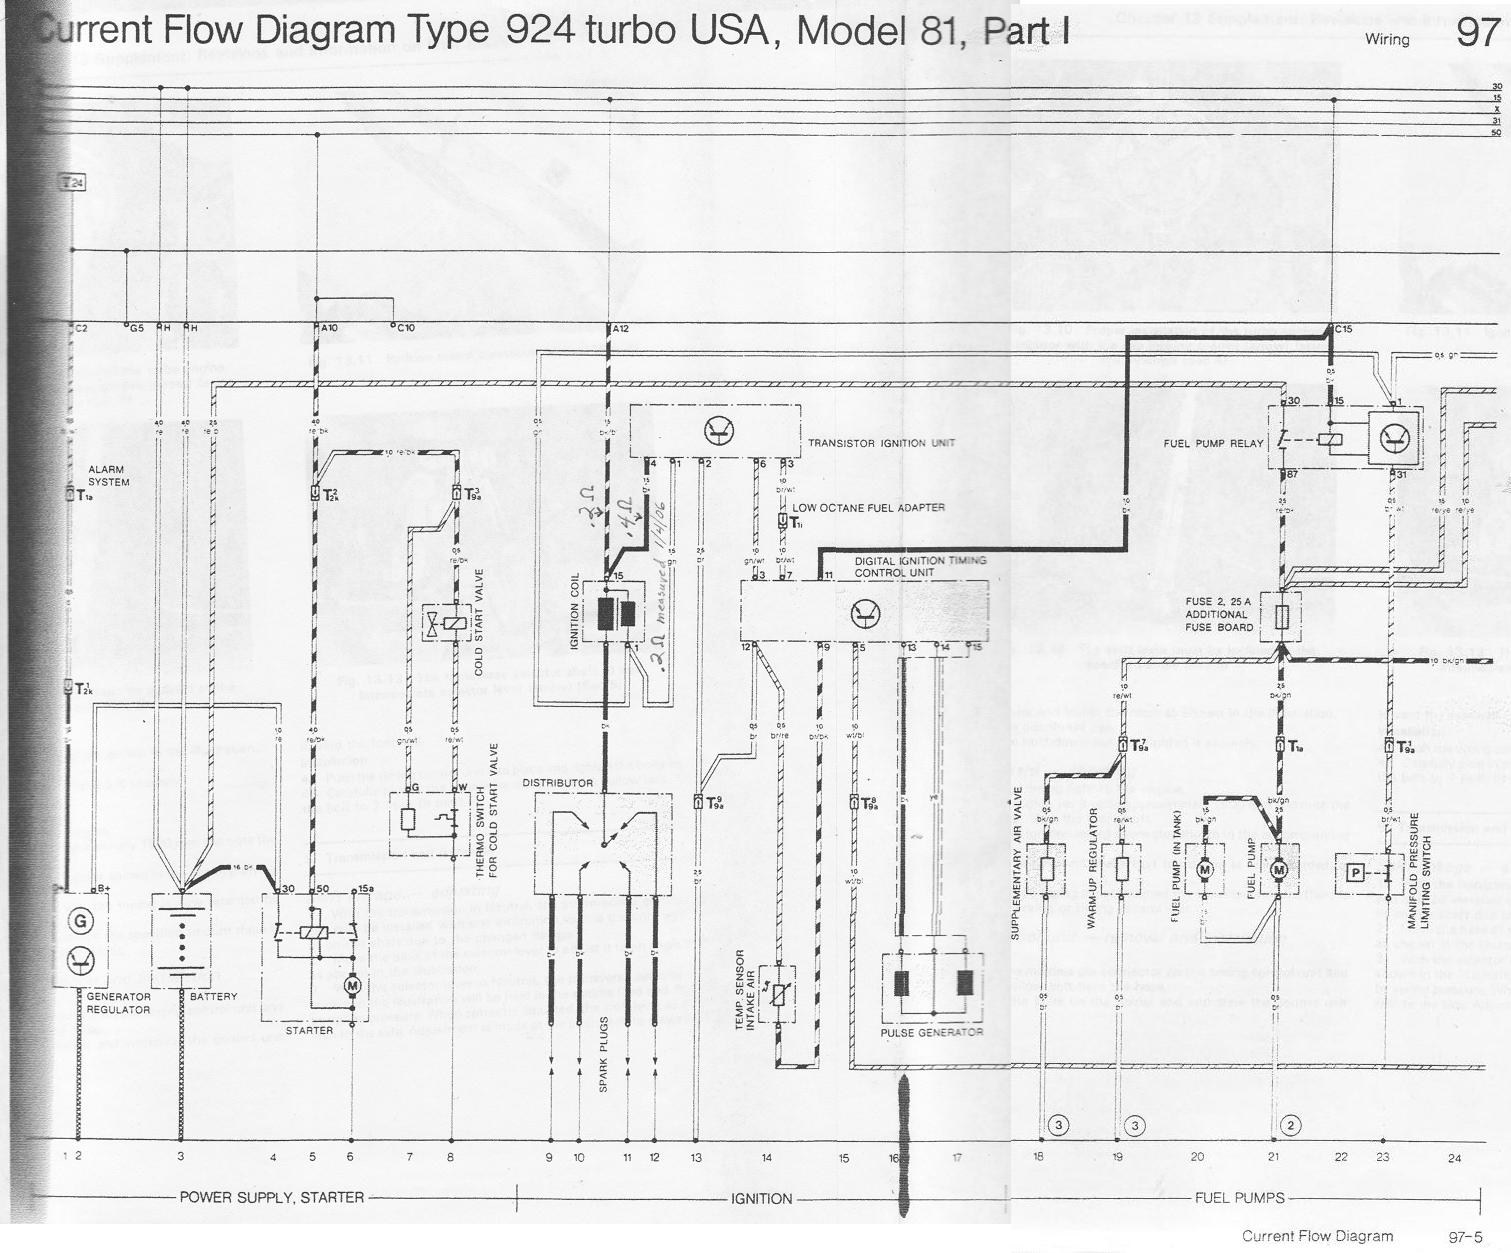 1996 ford f700 ignition wiring schematic 1972 f250